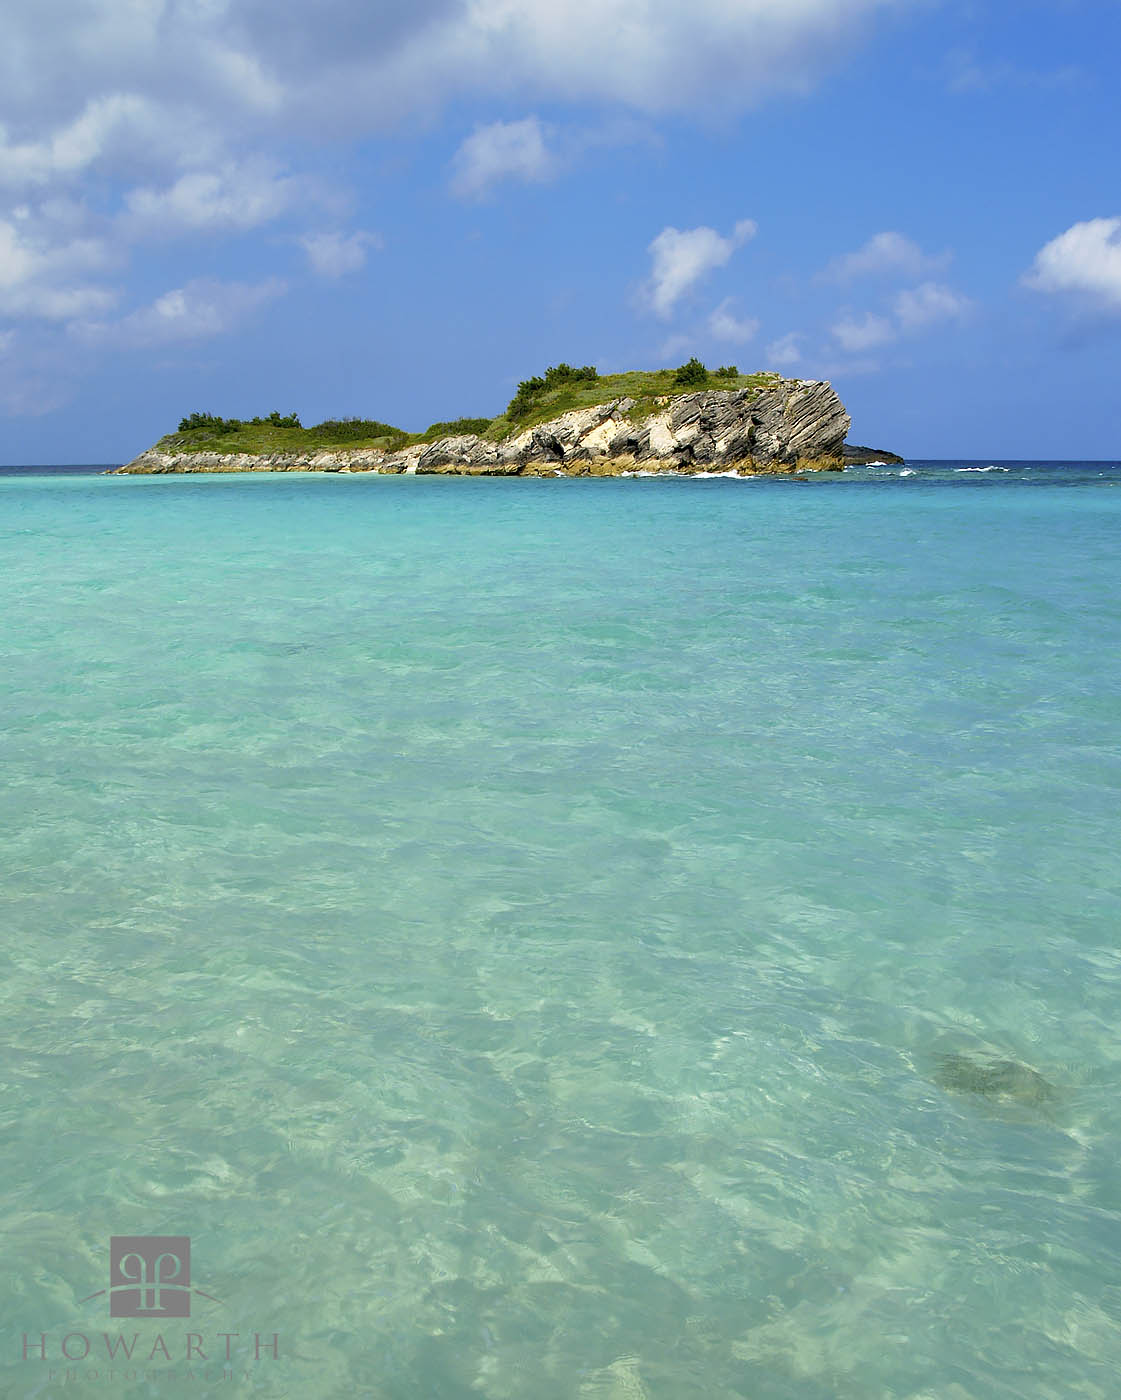 Turquoise waters lead to Charles Island under blue skies